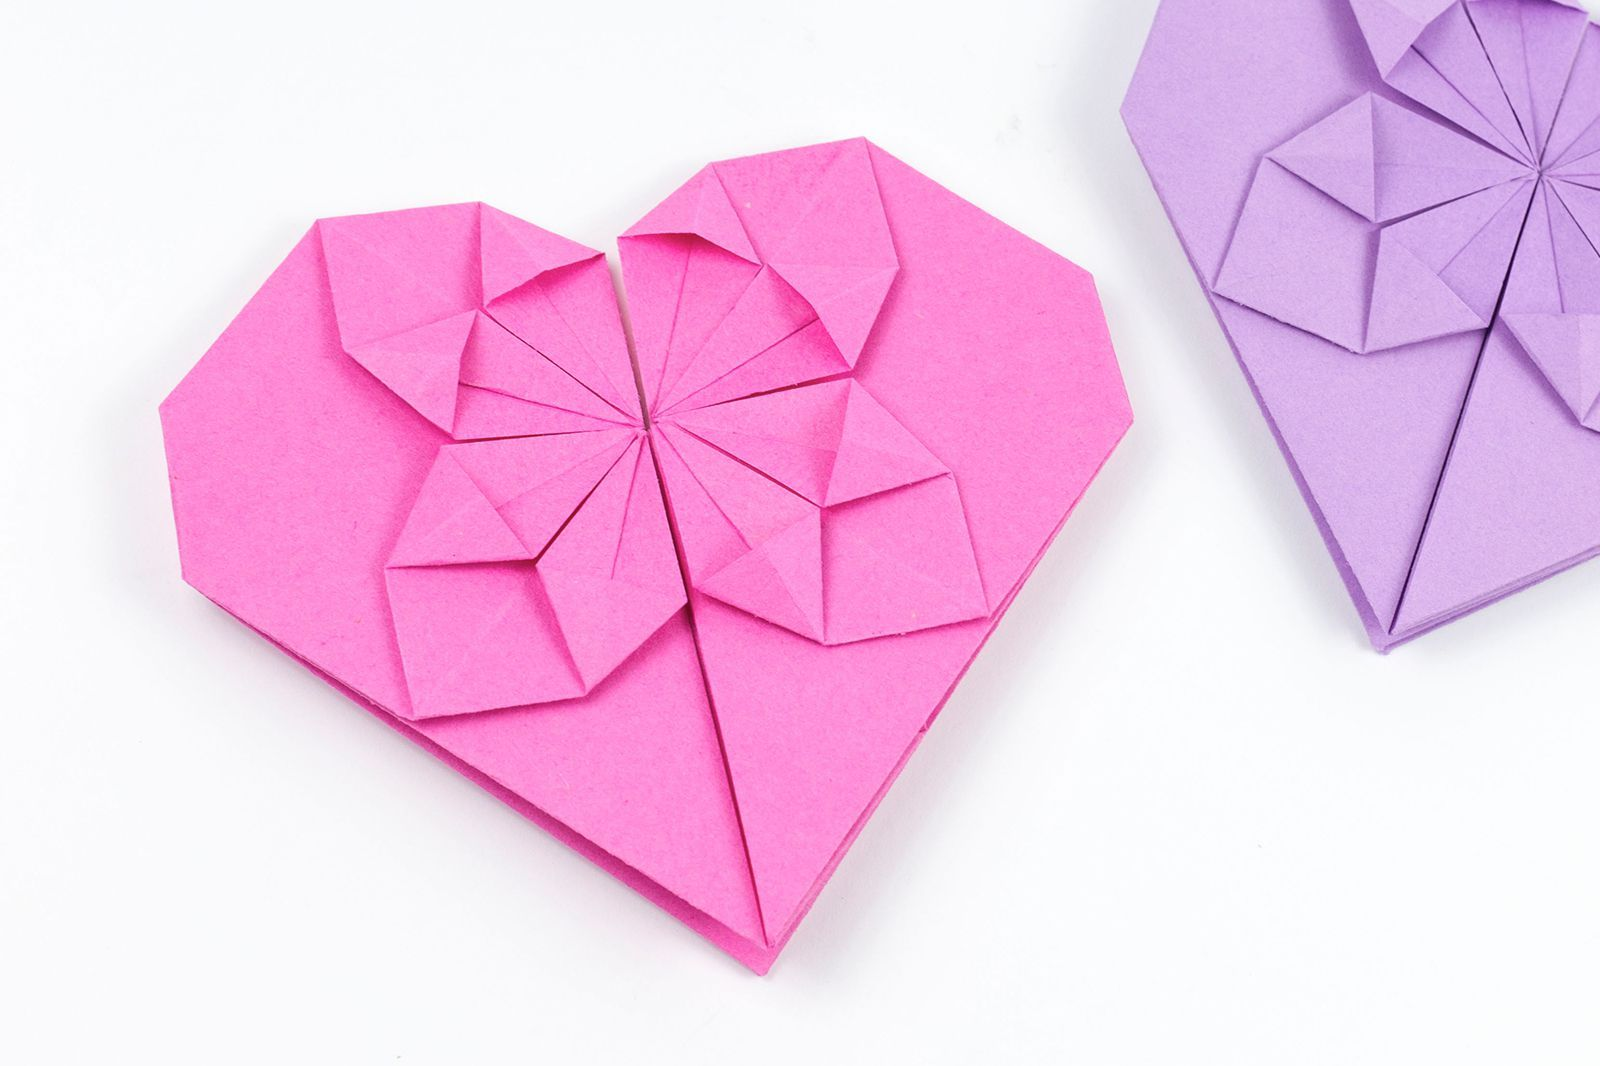 How to make an origami heart origami hearts paper hearts and how to make an origami heart jeuxipadfo Images